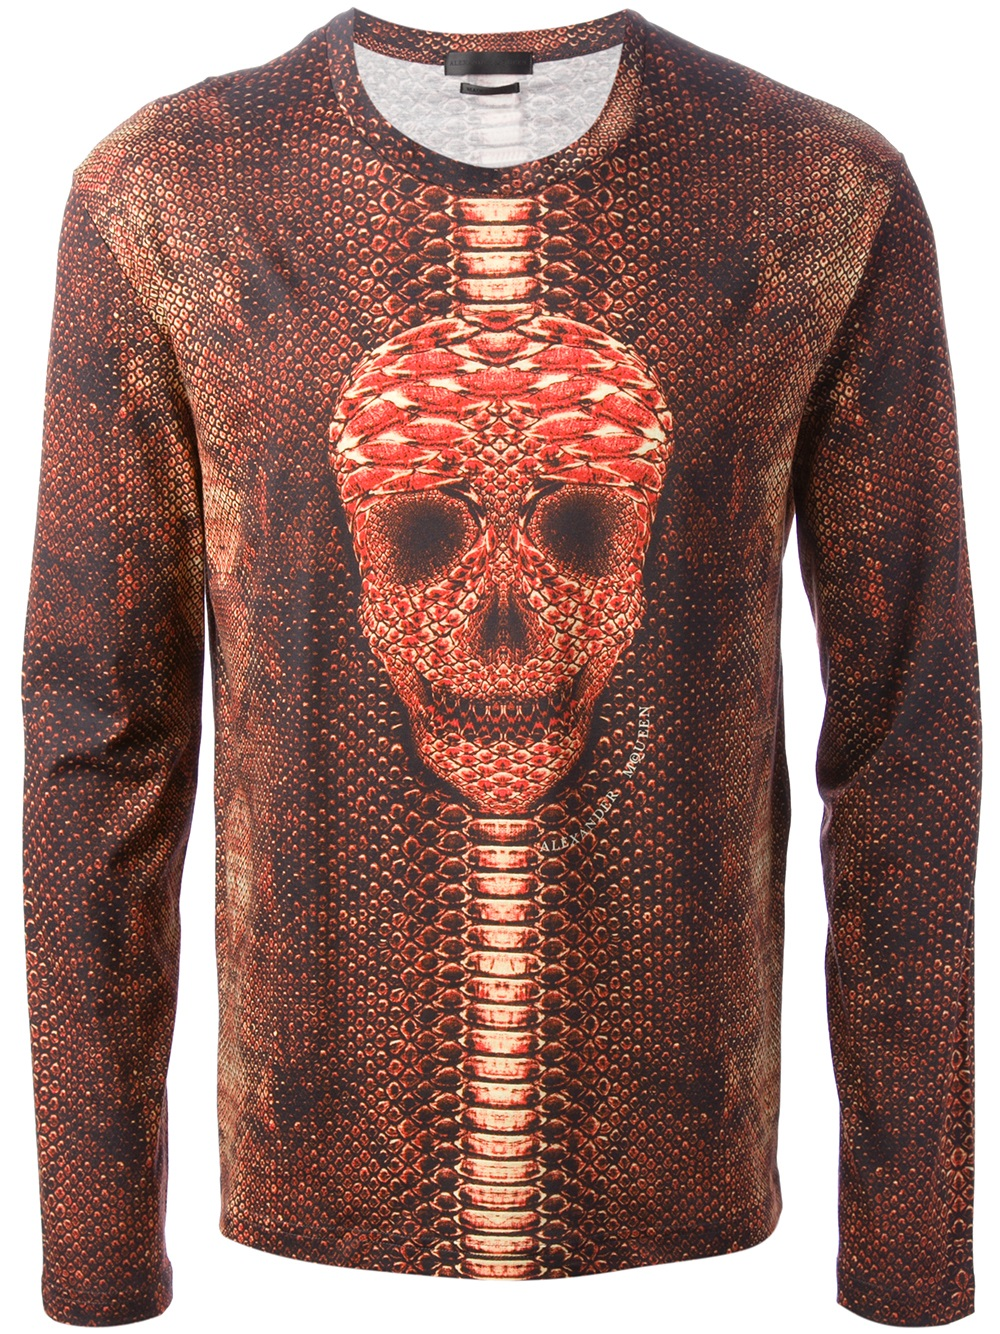 Lyst alexander mcqueen printed long sleeve tshirt in for Long sleeve printed t shirts